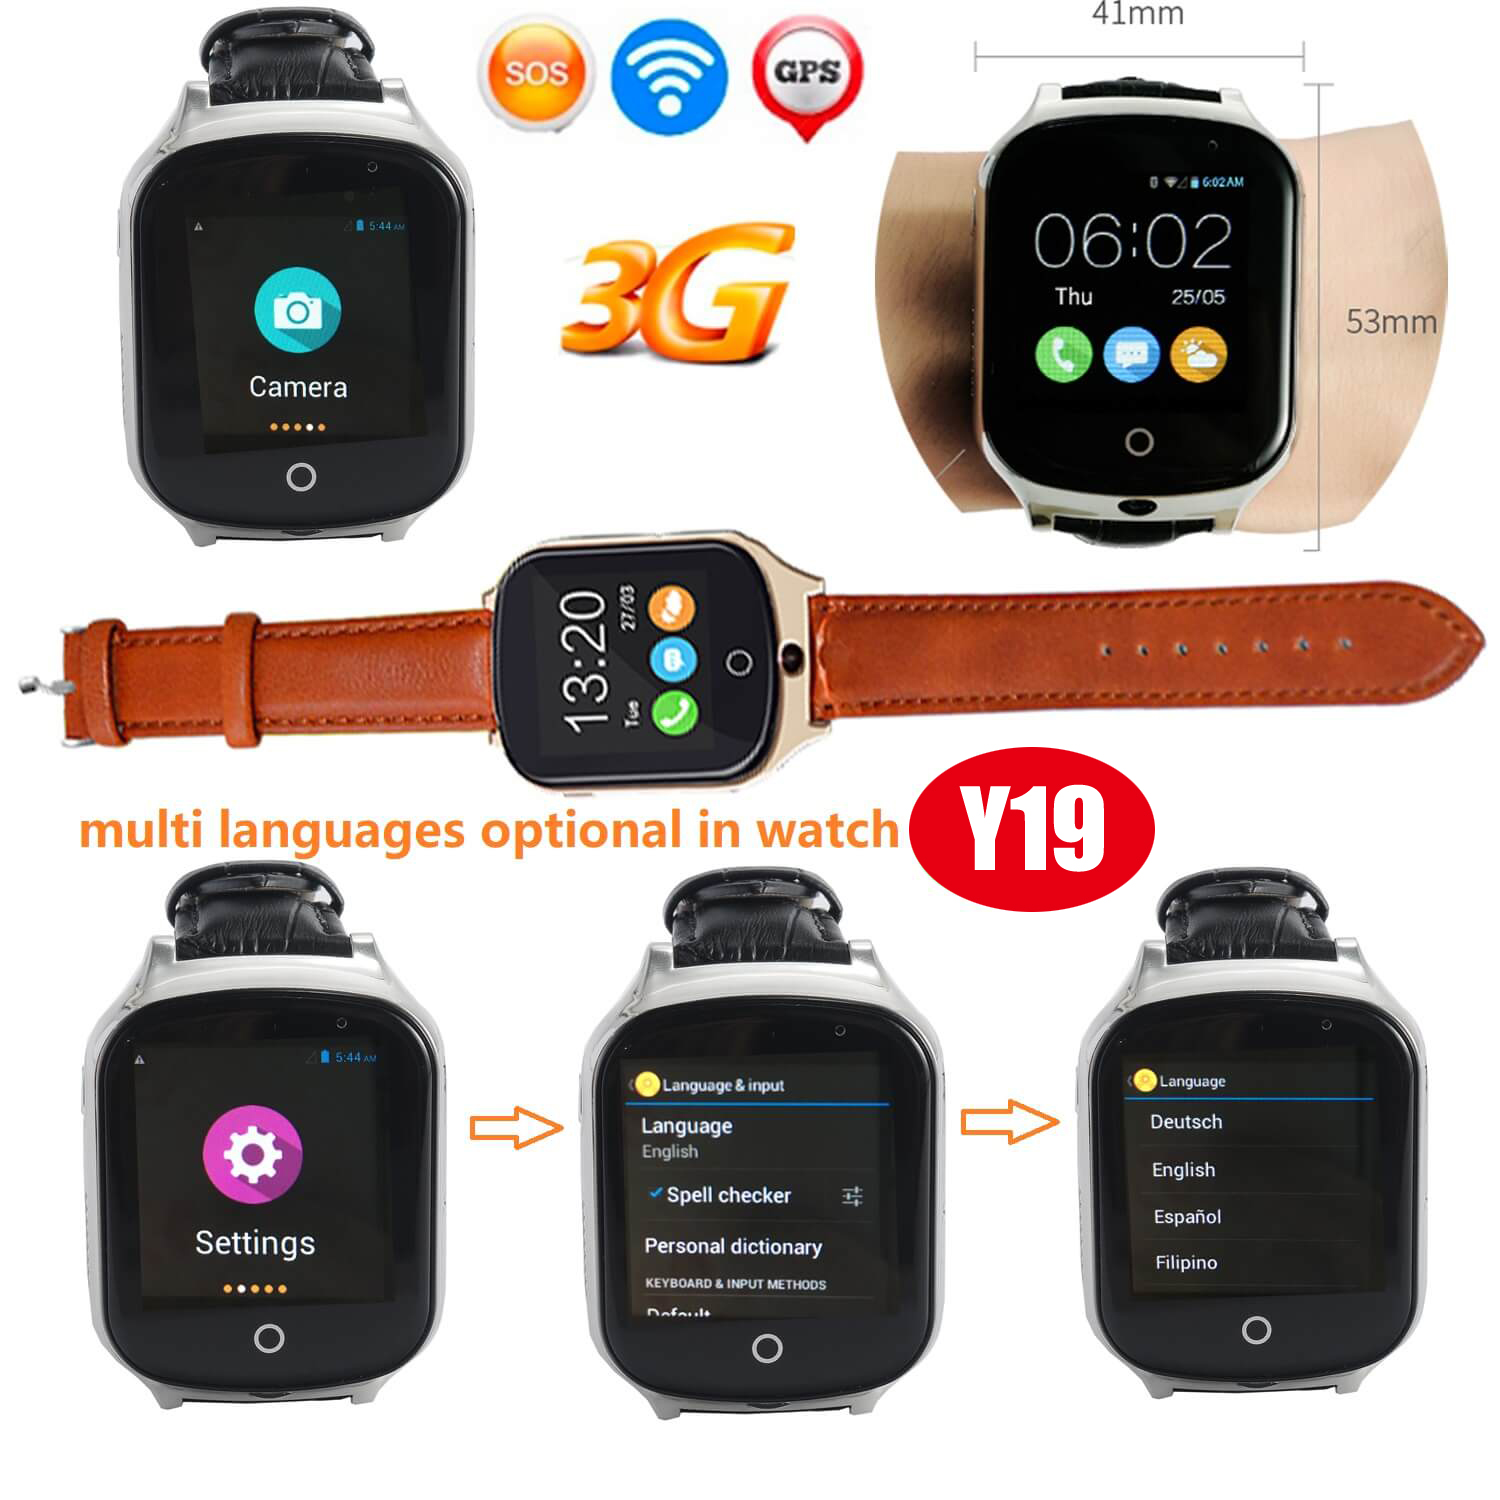 3G WCDMA Adult GPS Tracker Watch with Camera Y19